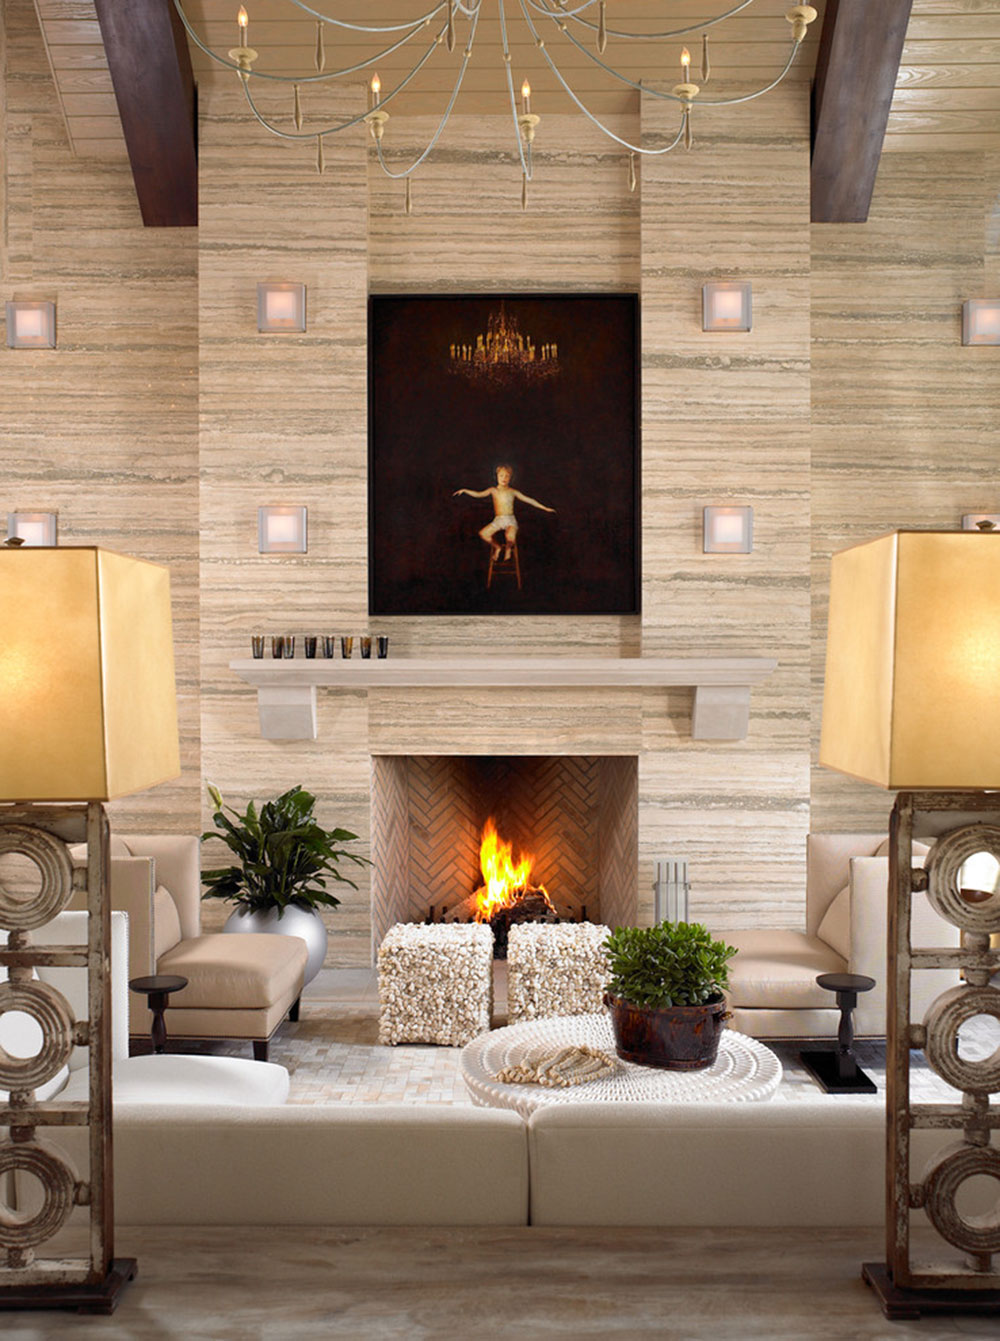 Fireplace covering-decoration-ideas-for-a-cozy-home4 fireplace covering-decoration ideas for a cozy home